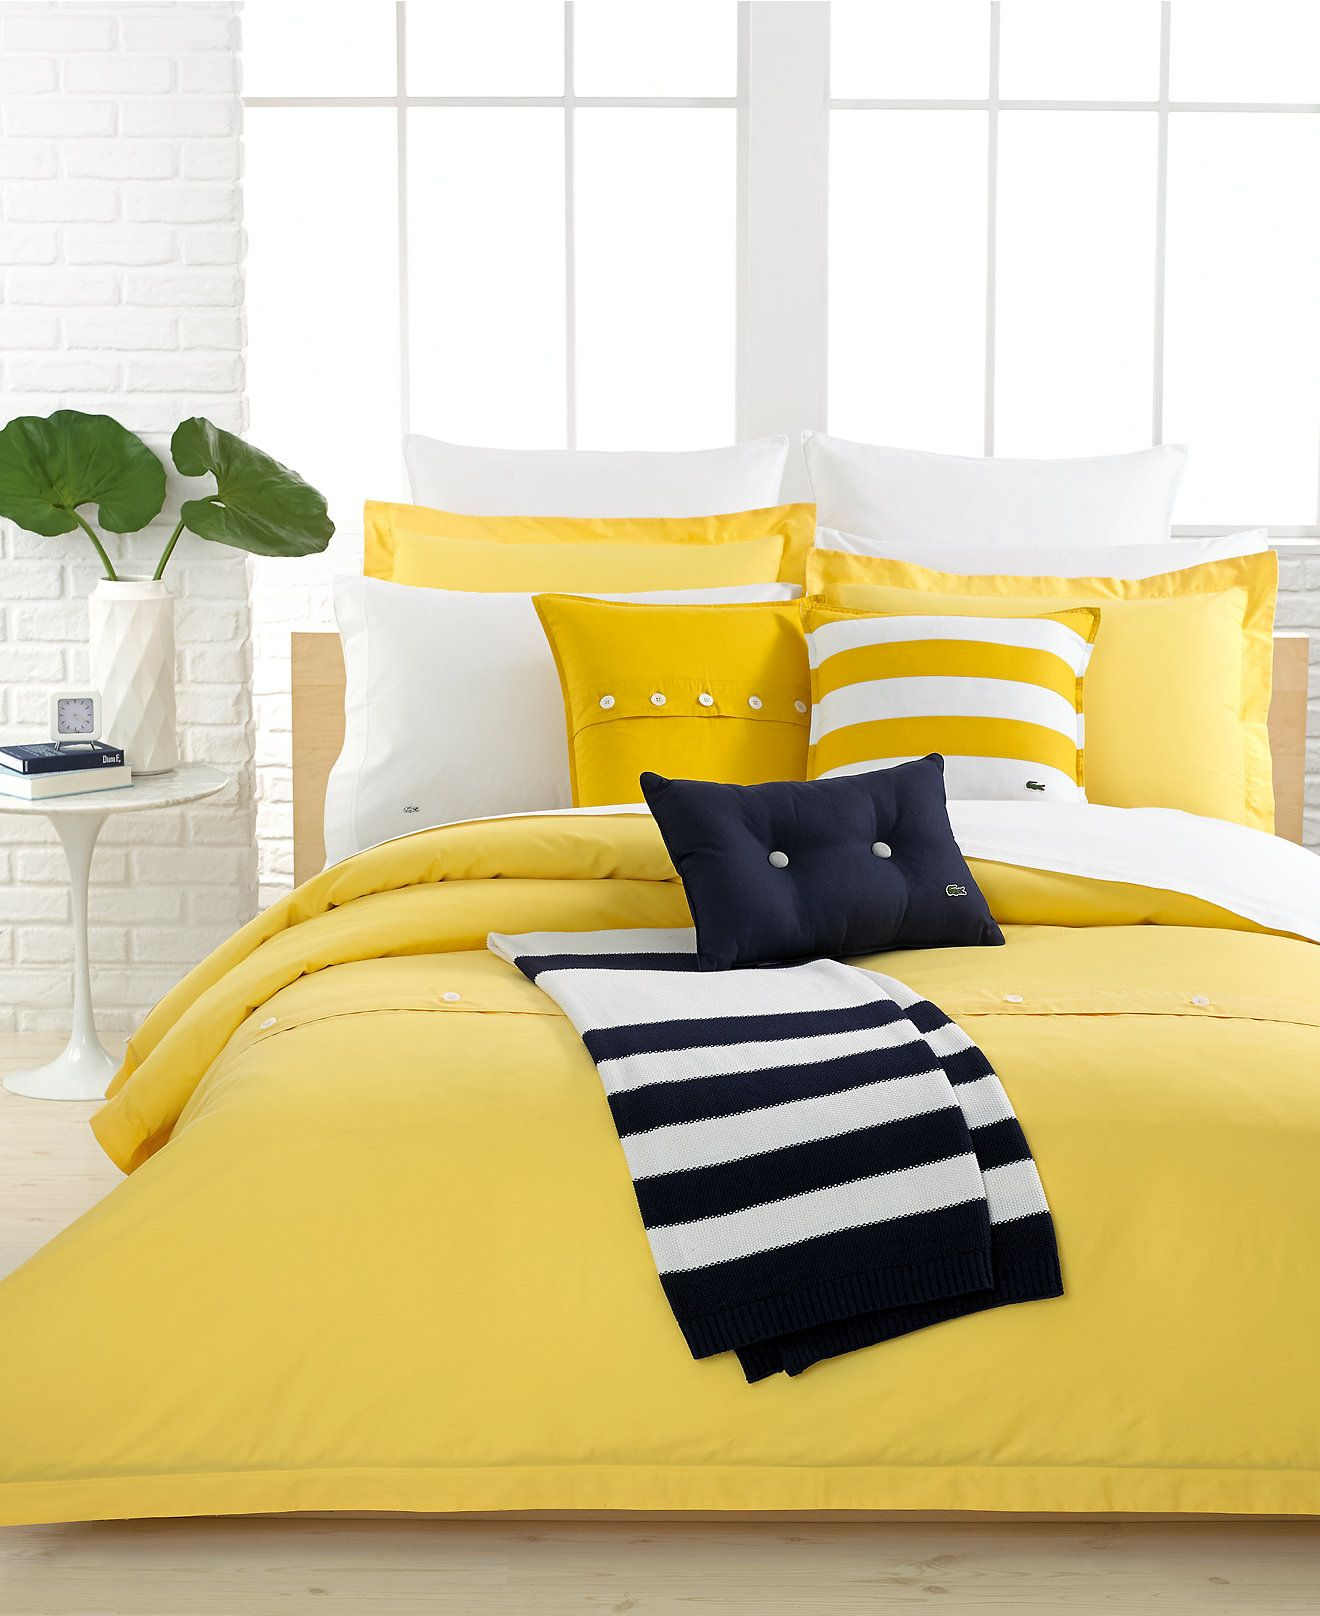 Yellow and black bedding sets - Lacoste Solid Lemon Drop Brushed Twill Comforter And Duvet Cover Sets Bedding Collections